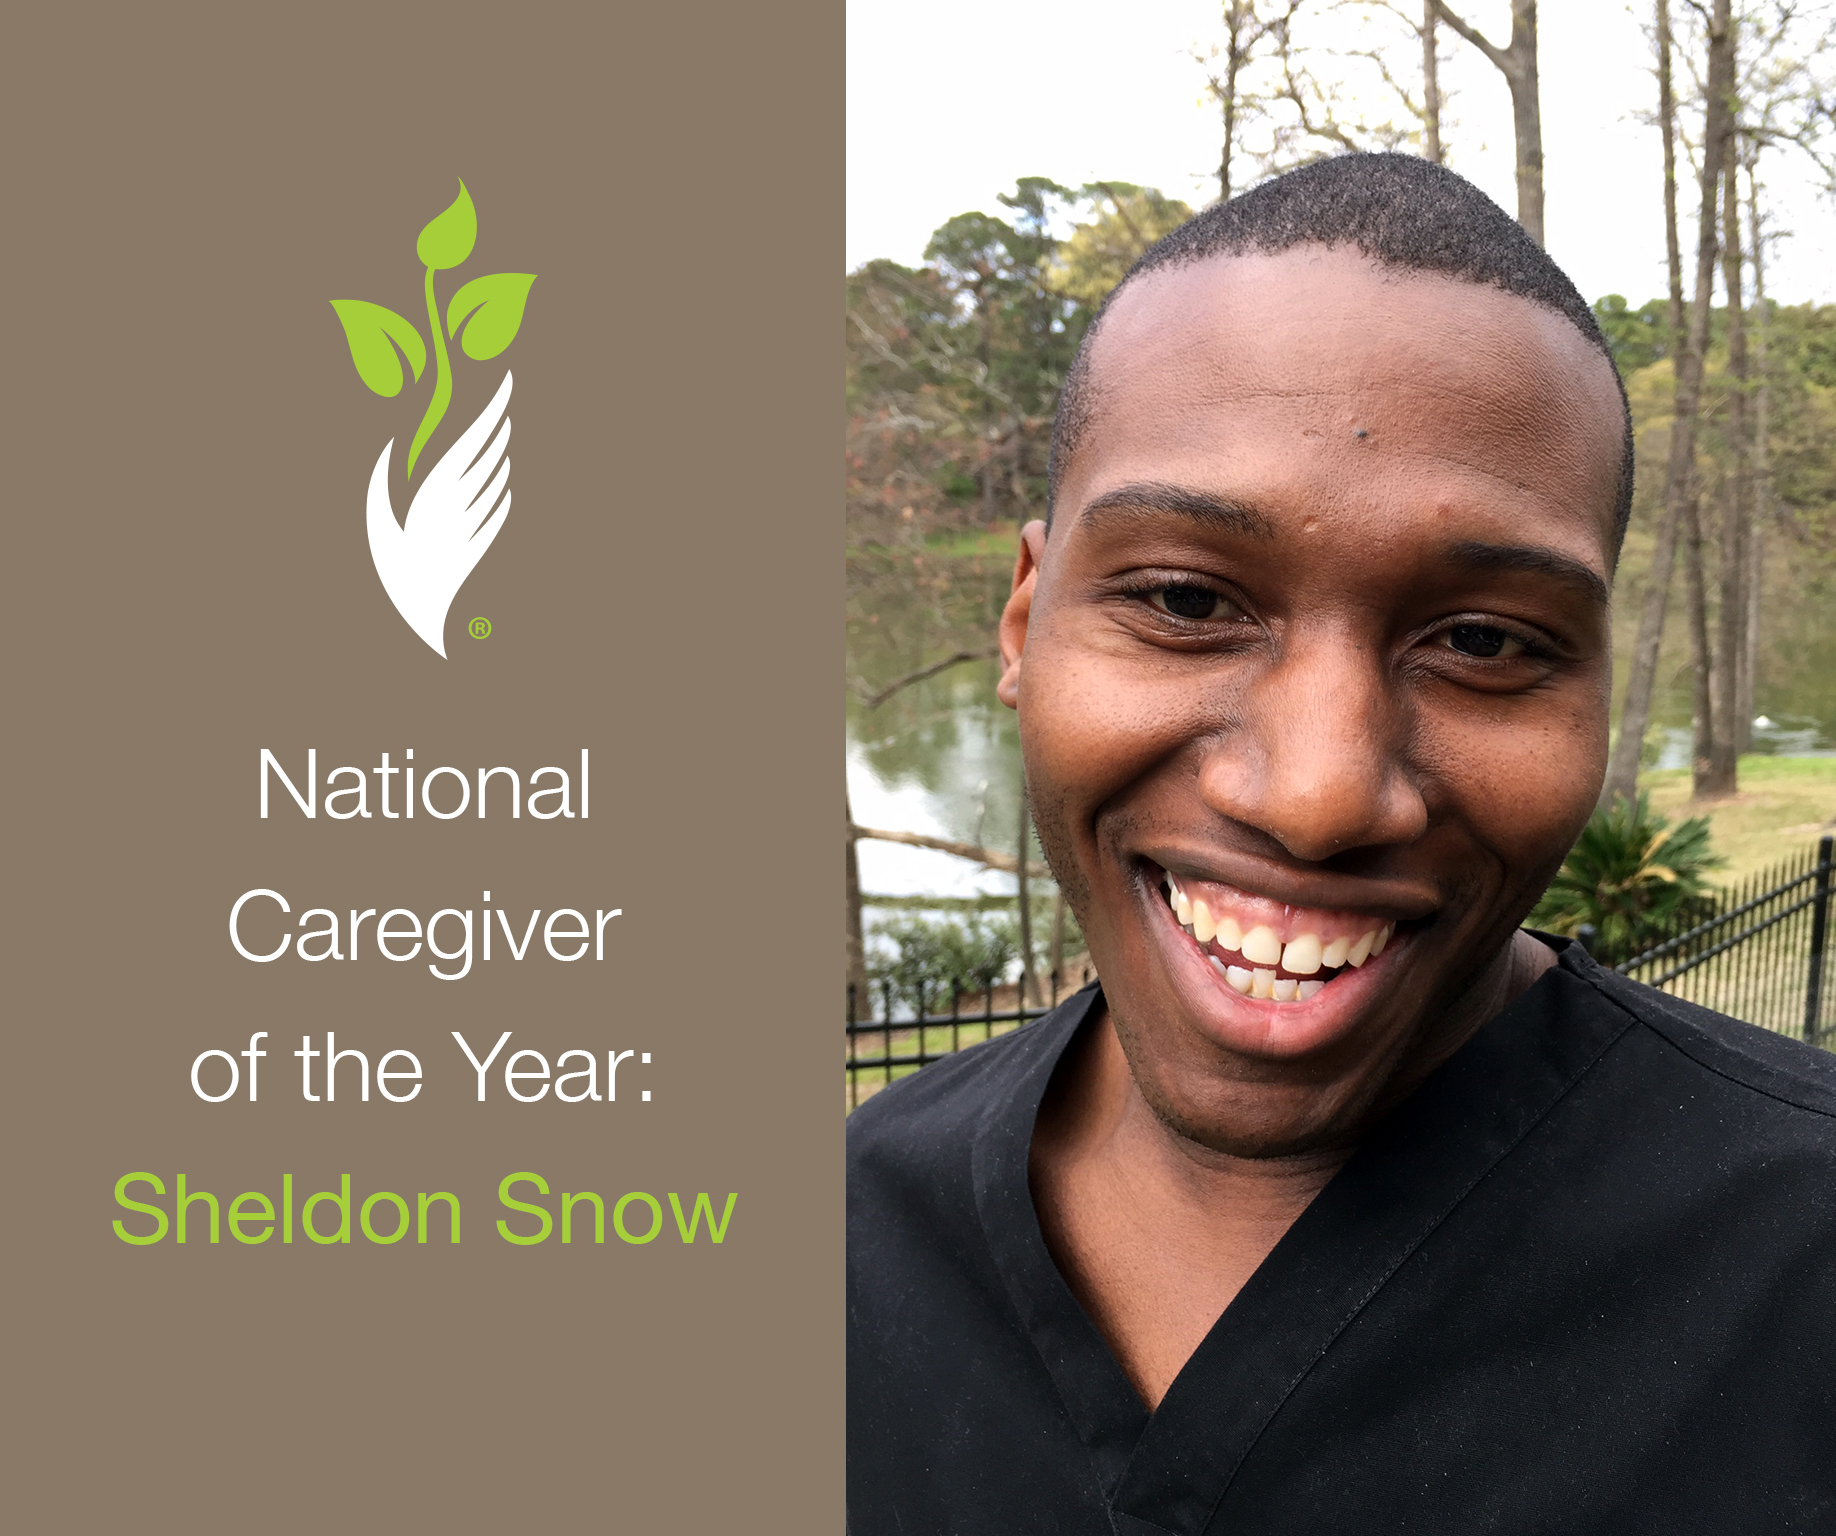 National Caregiver of the Year: Sheldon Snow